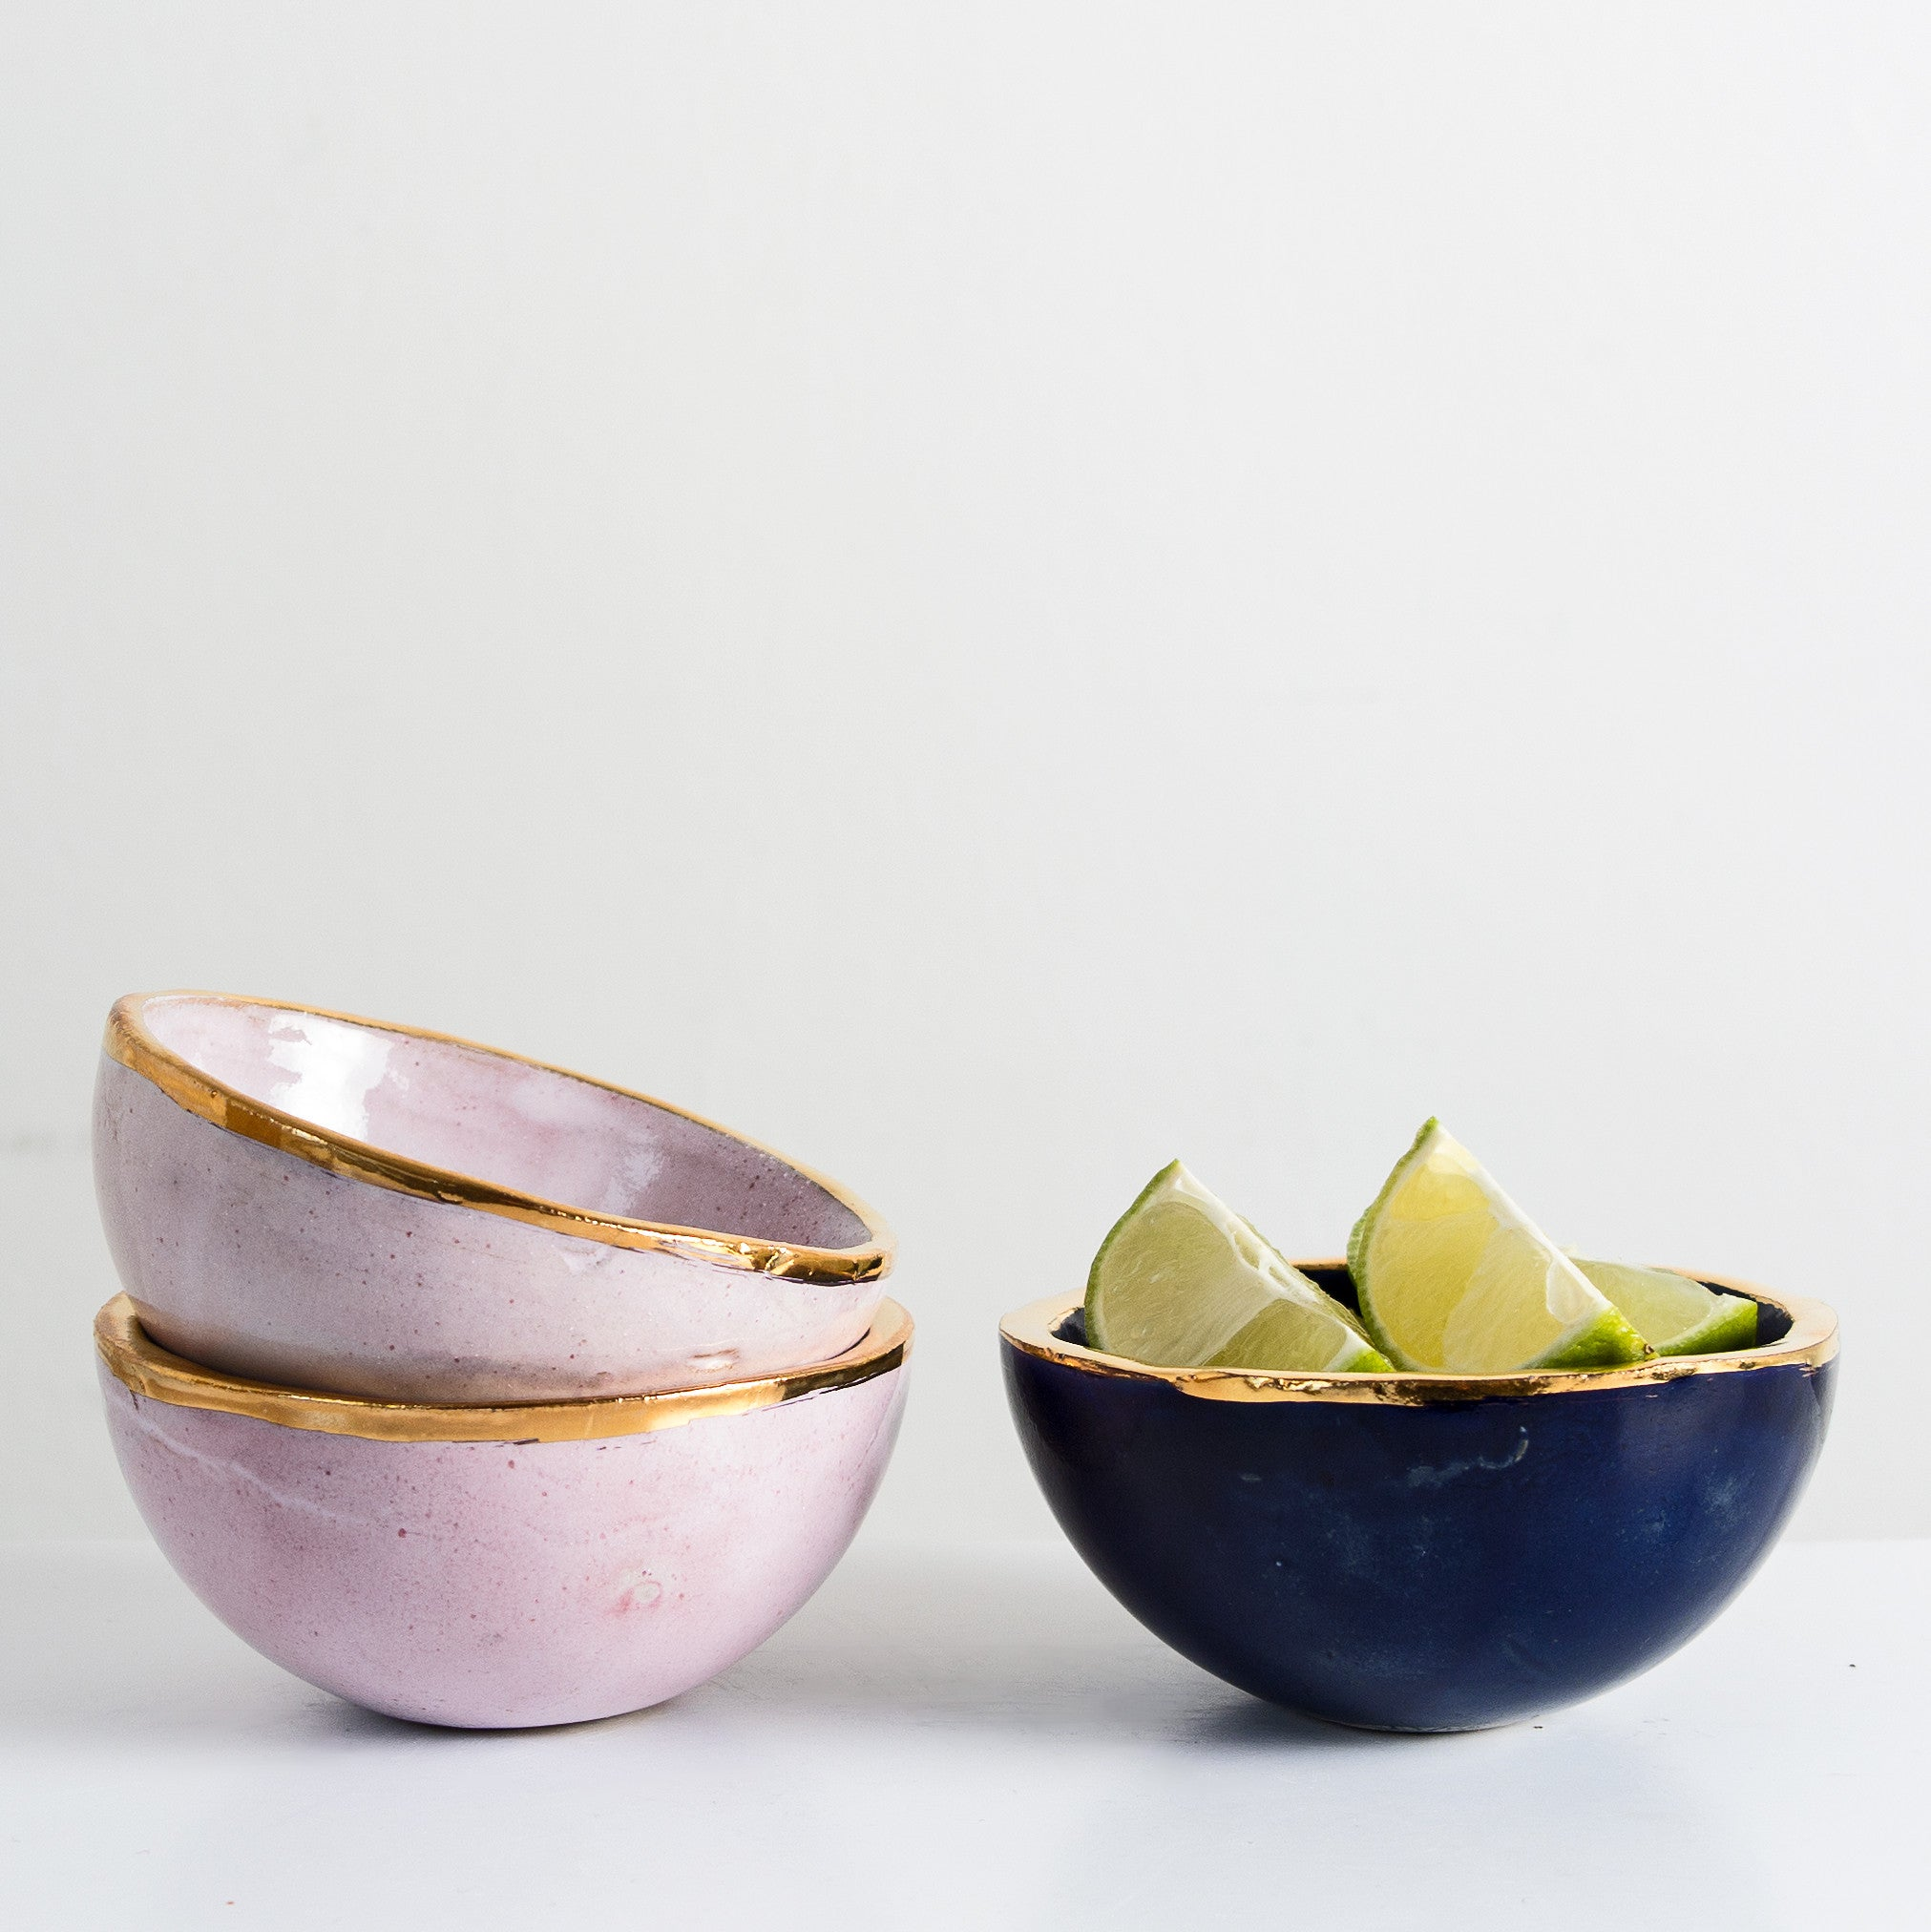 Handmade ceramic bowl with gold